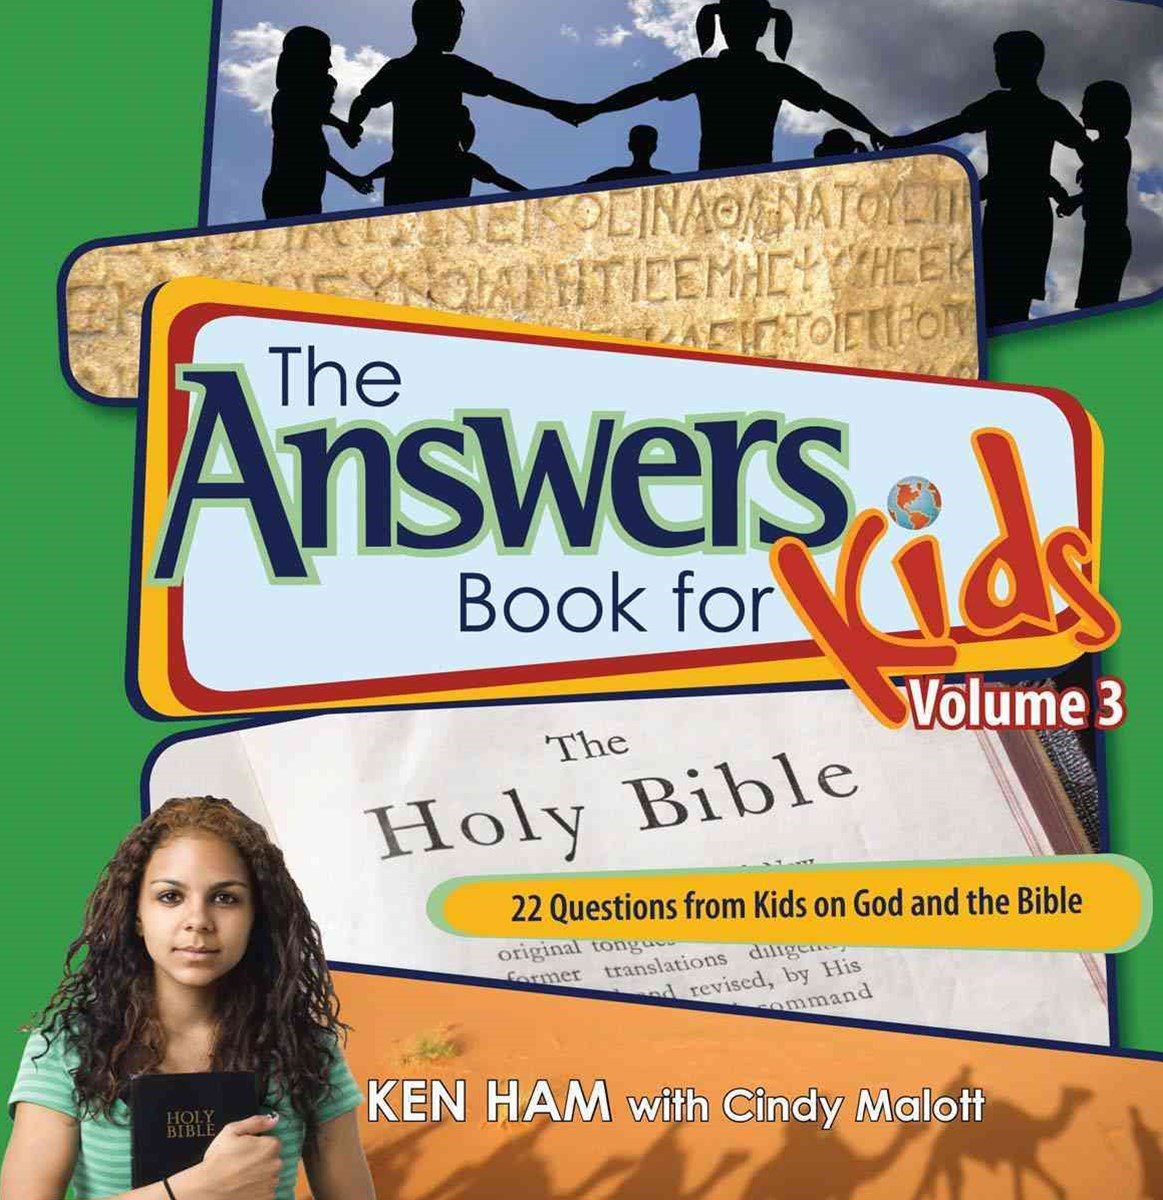 The Answers Book for Kids, Volume 3